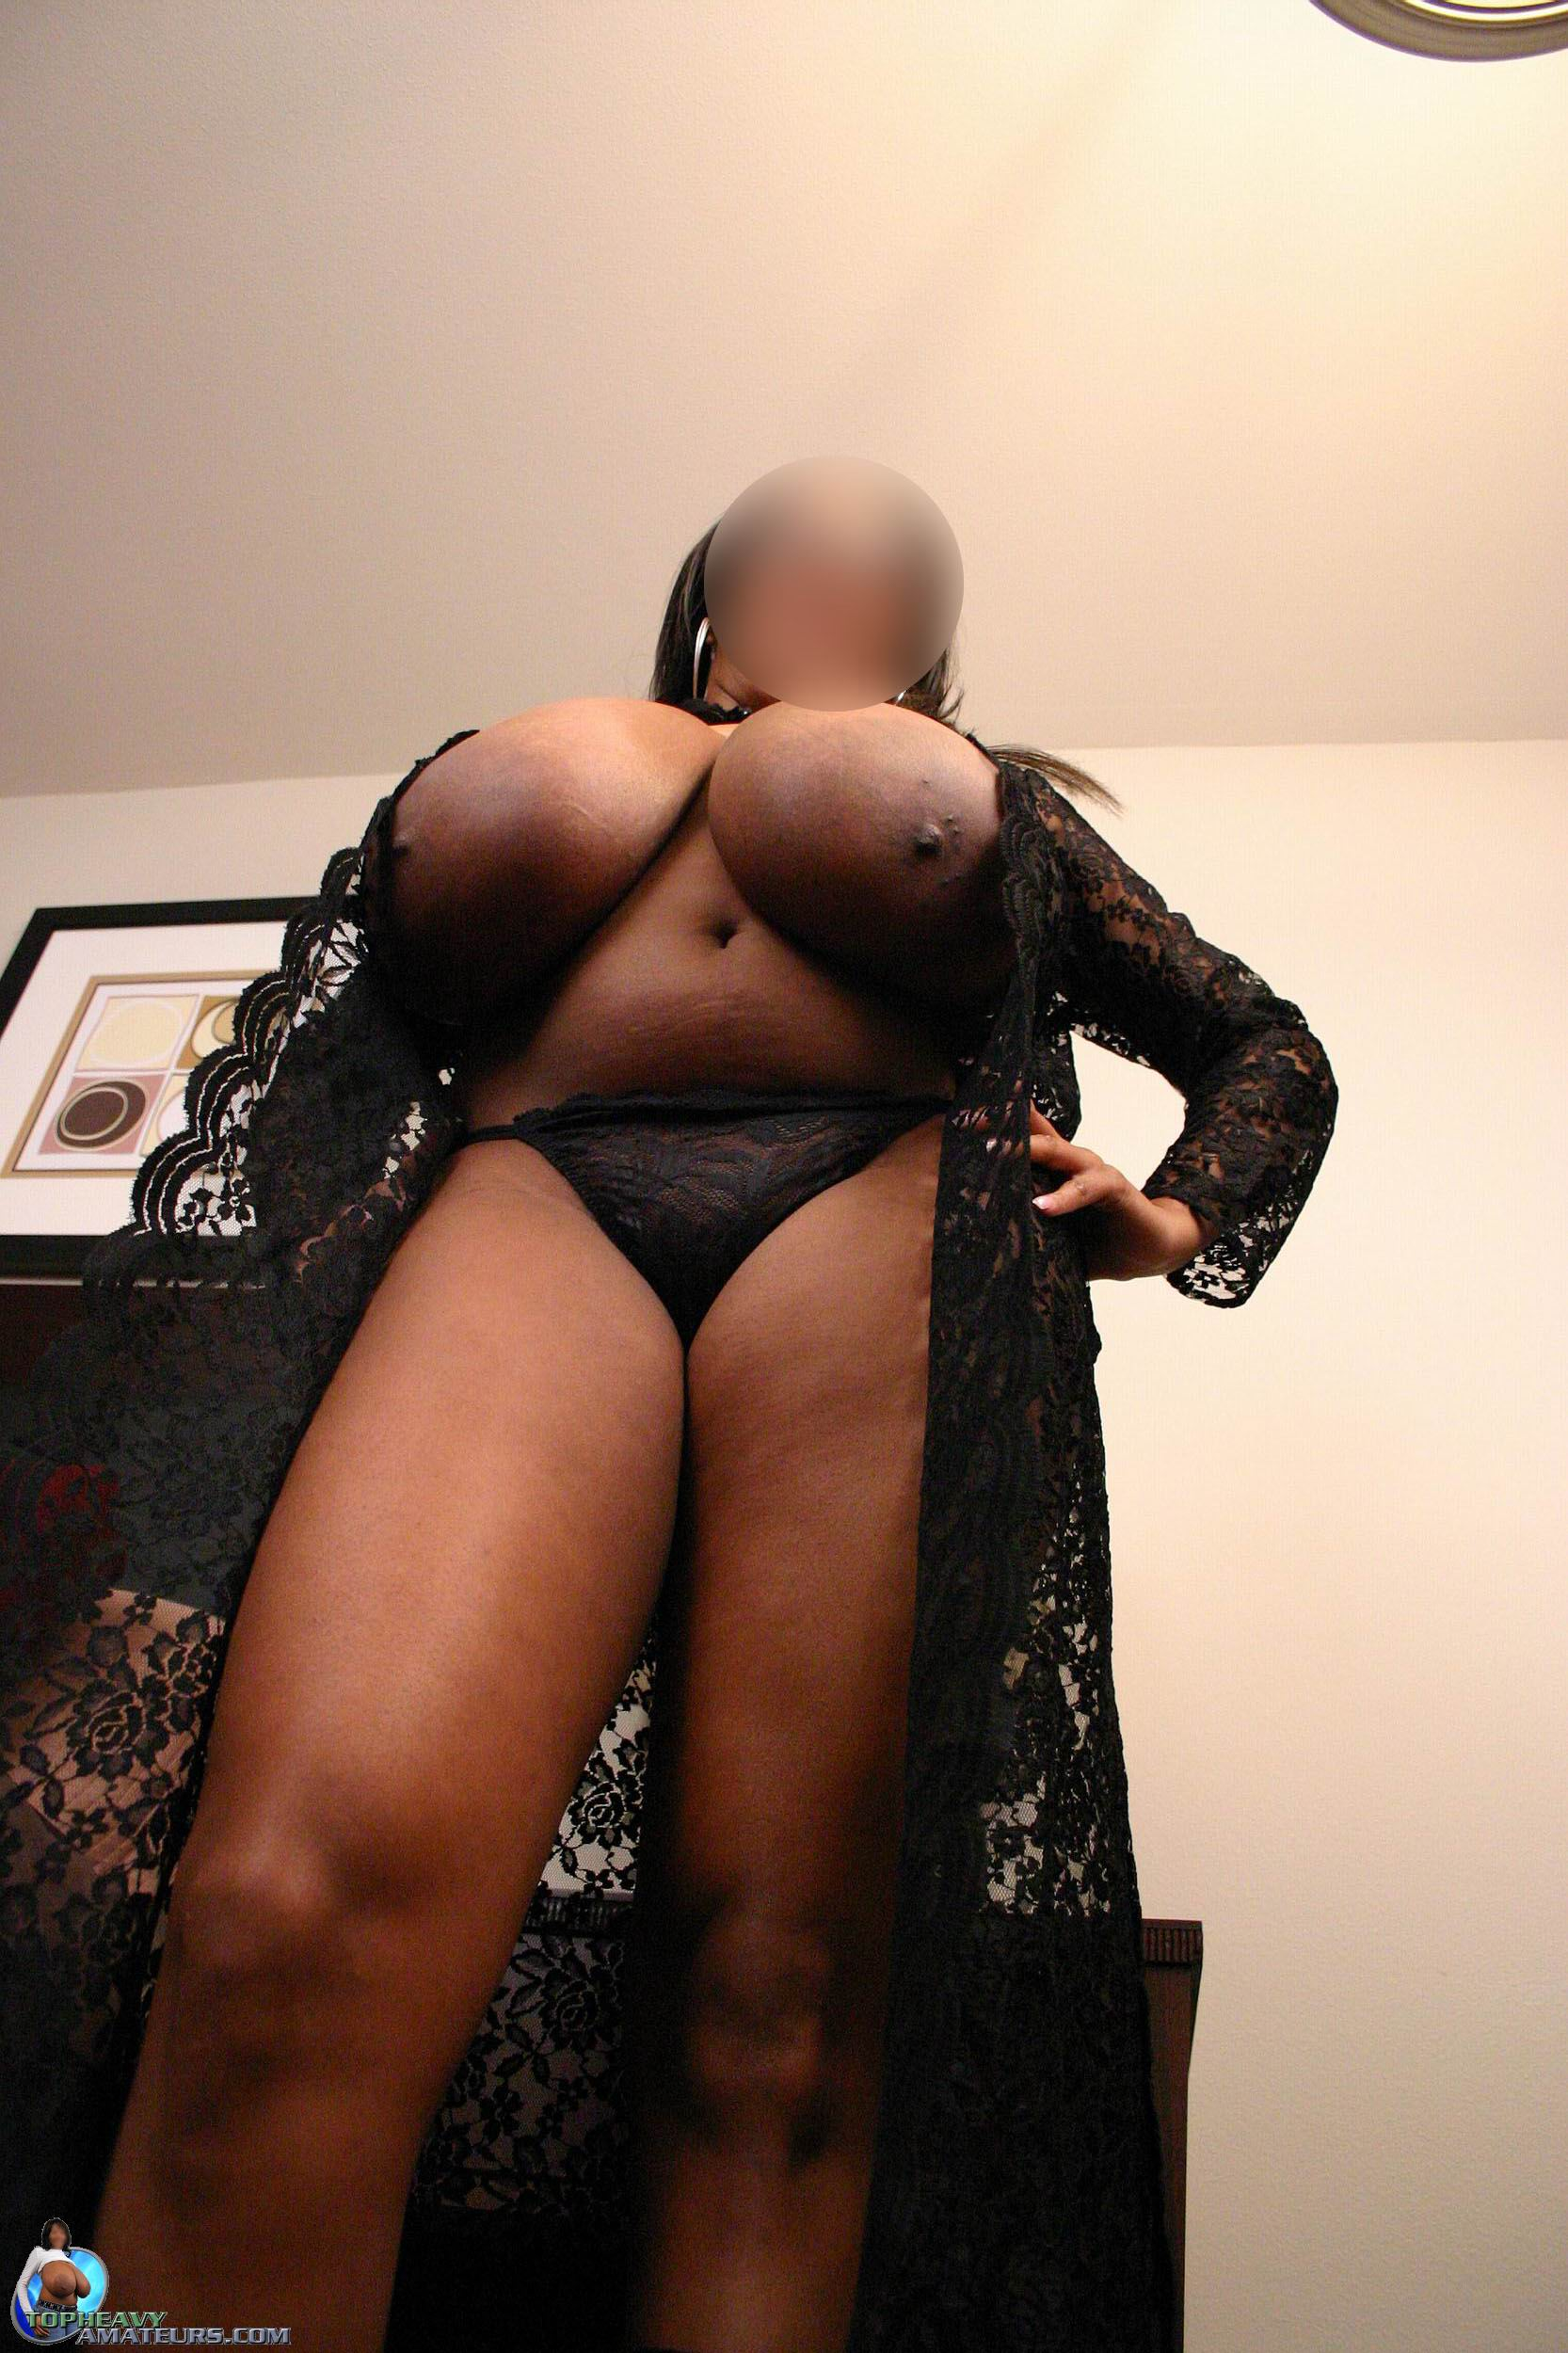 hot mom with bid boobs from Top Heavy Amateurs Image